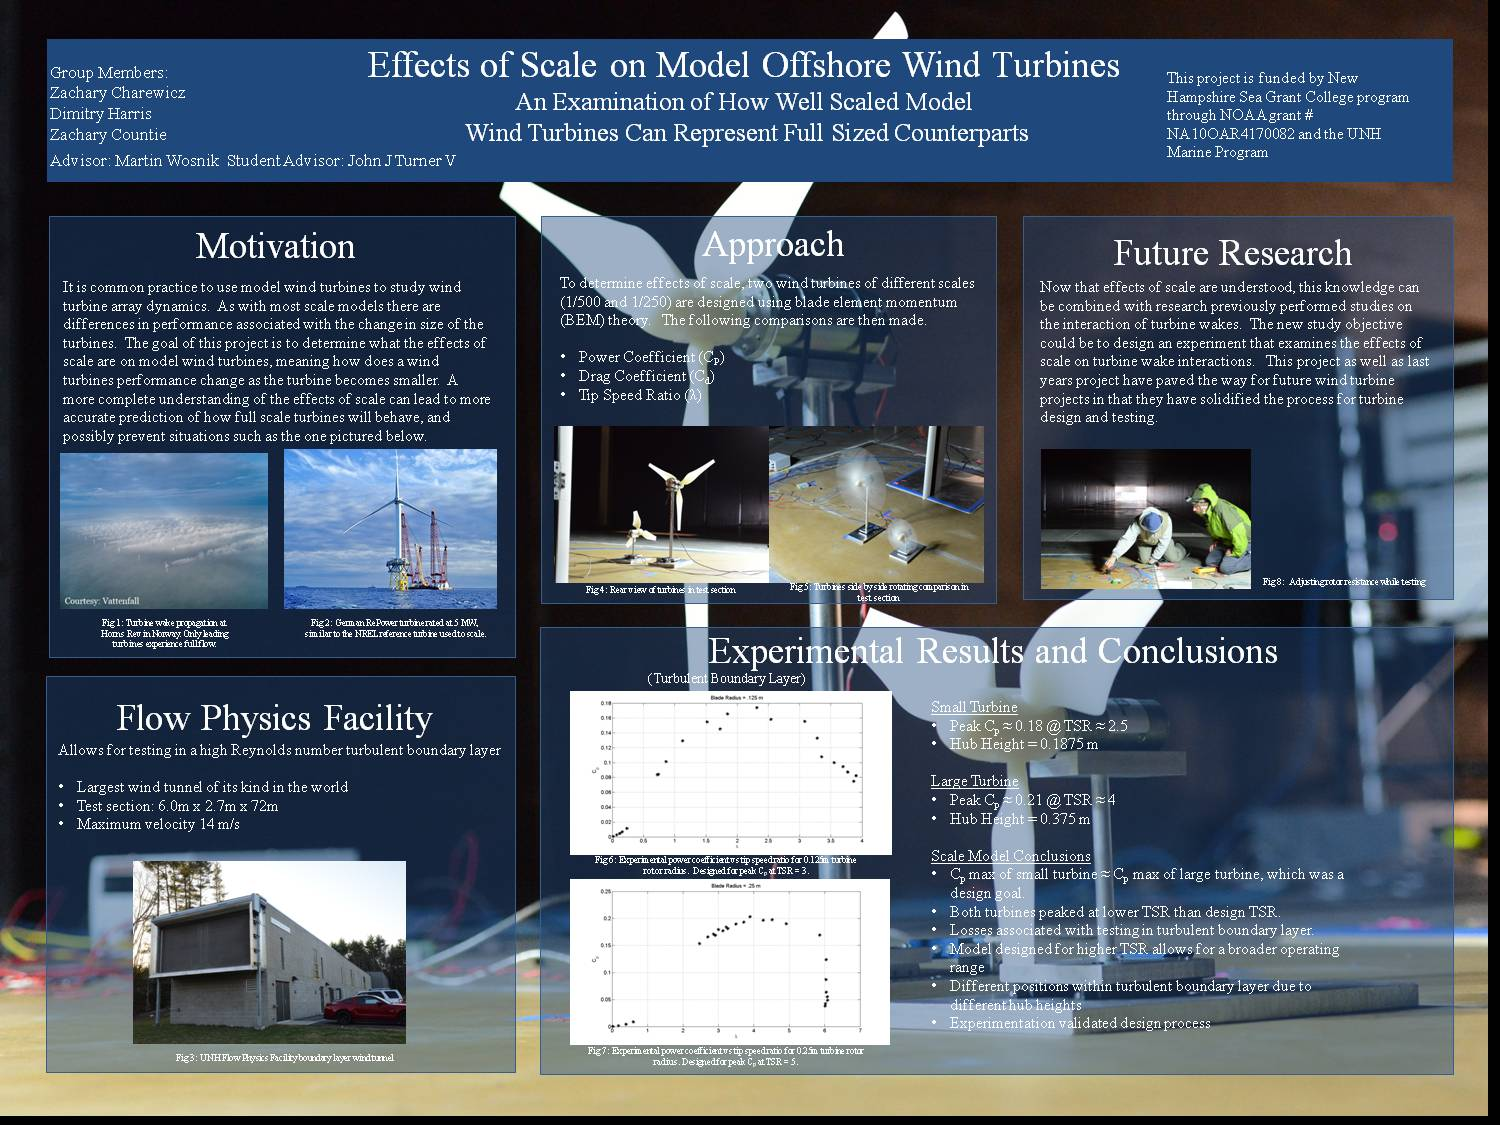 Effects Of Scale Wind Turbines by zcharewicz